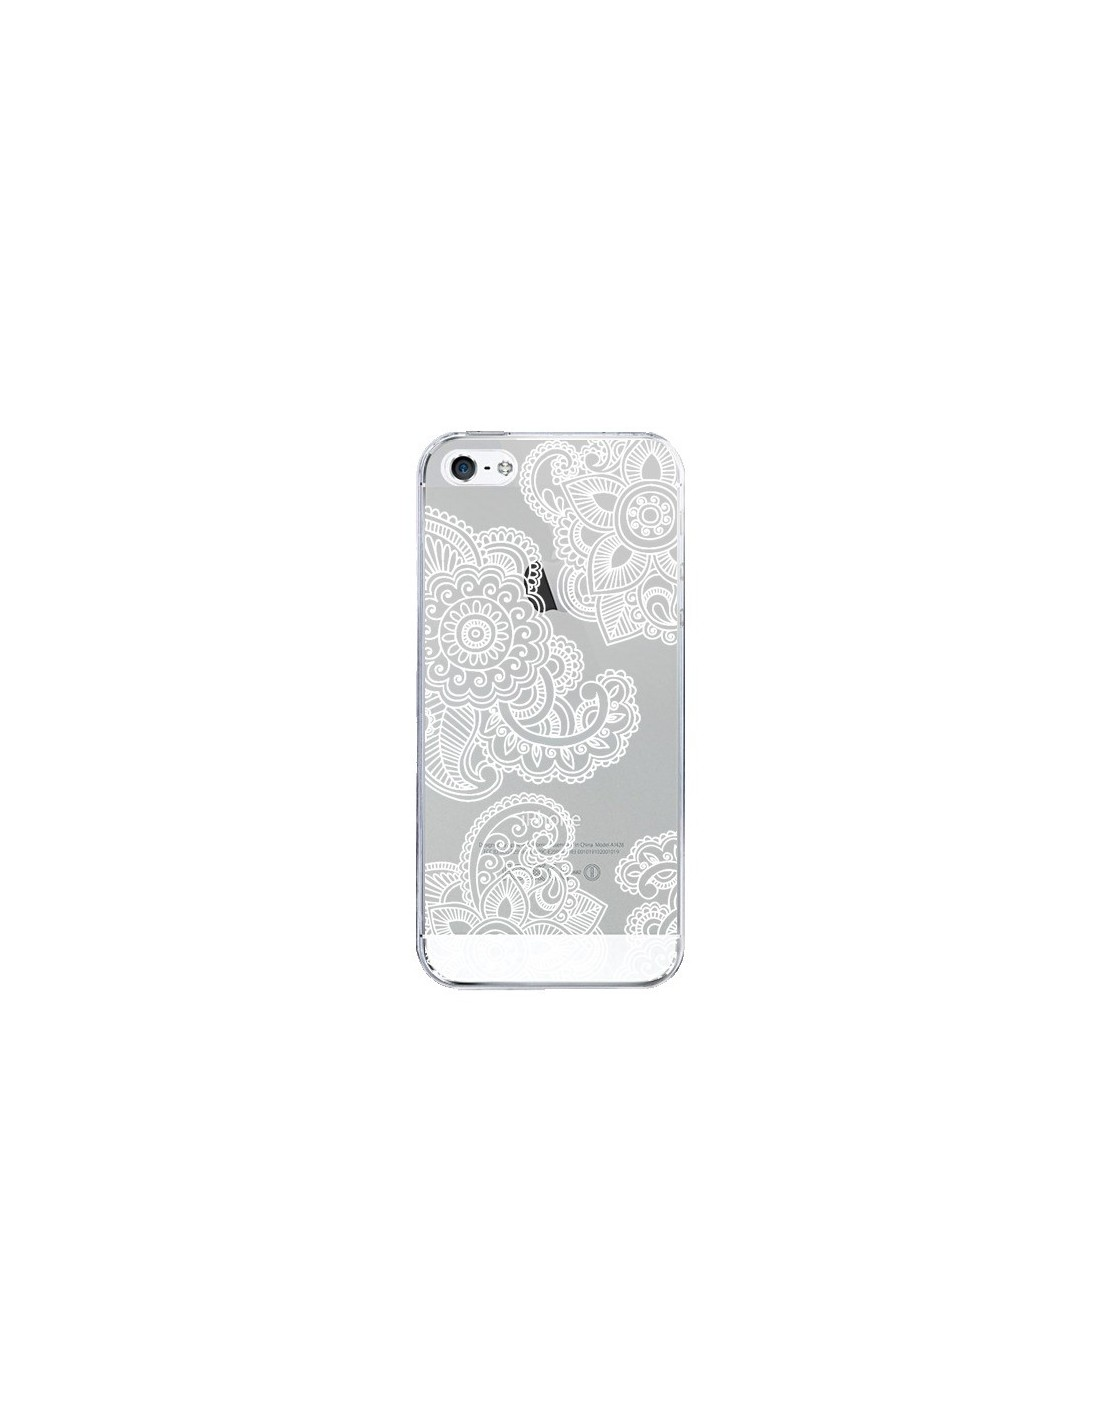 coque lacey paisley mandala blanc fleur transparente pour iphone 5 et 5s sylvia cook. Black Bedroom Furniture Sets. Home Design Ideas